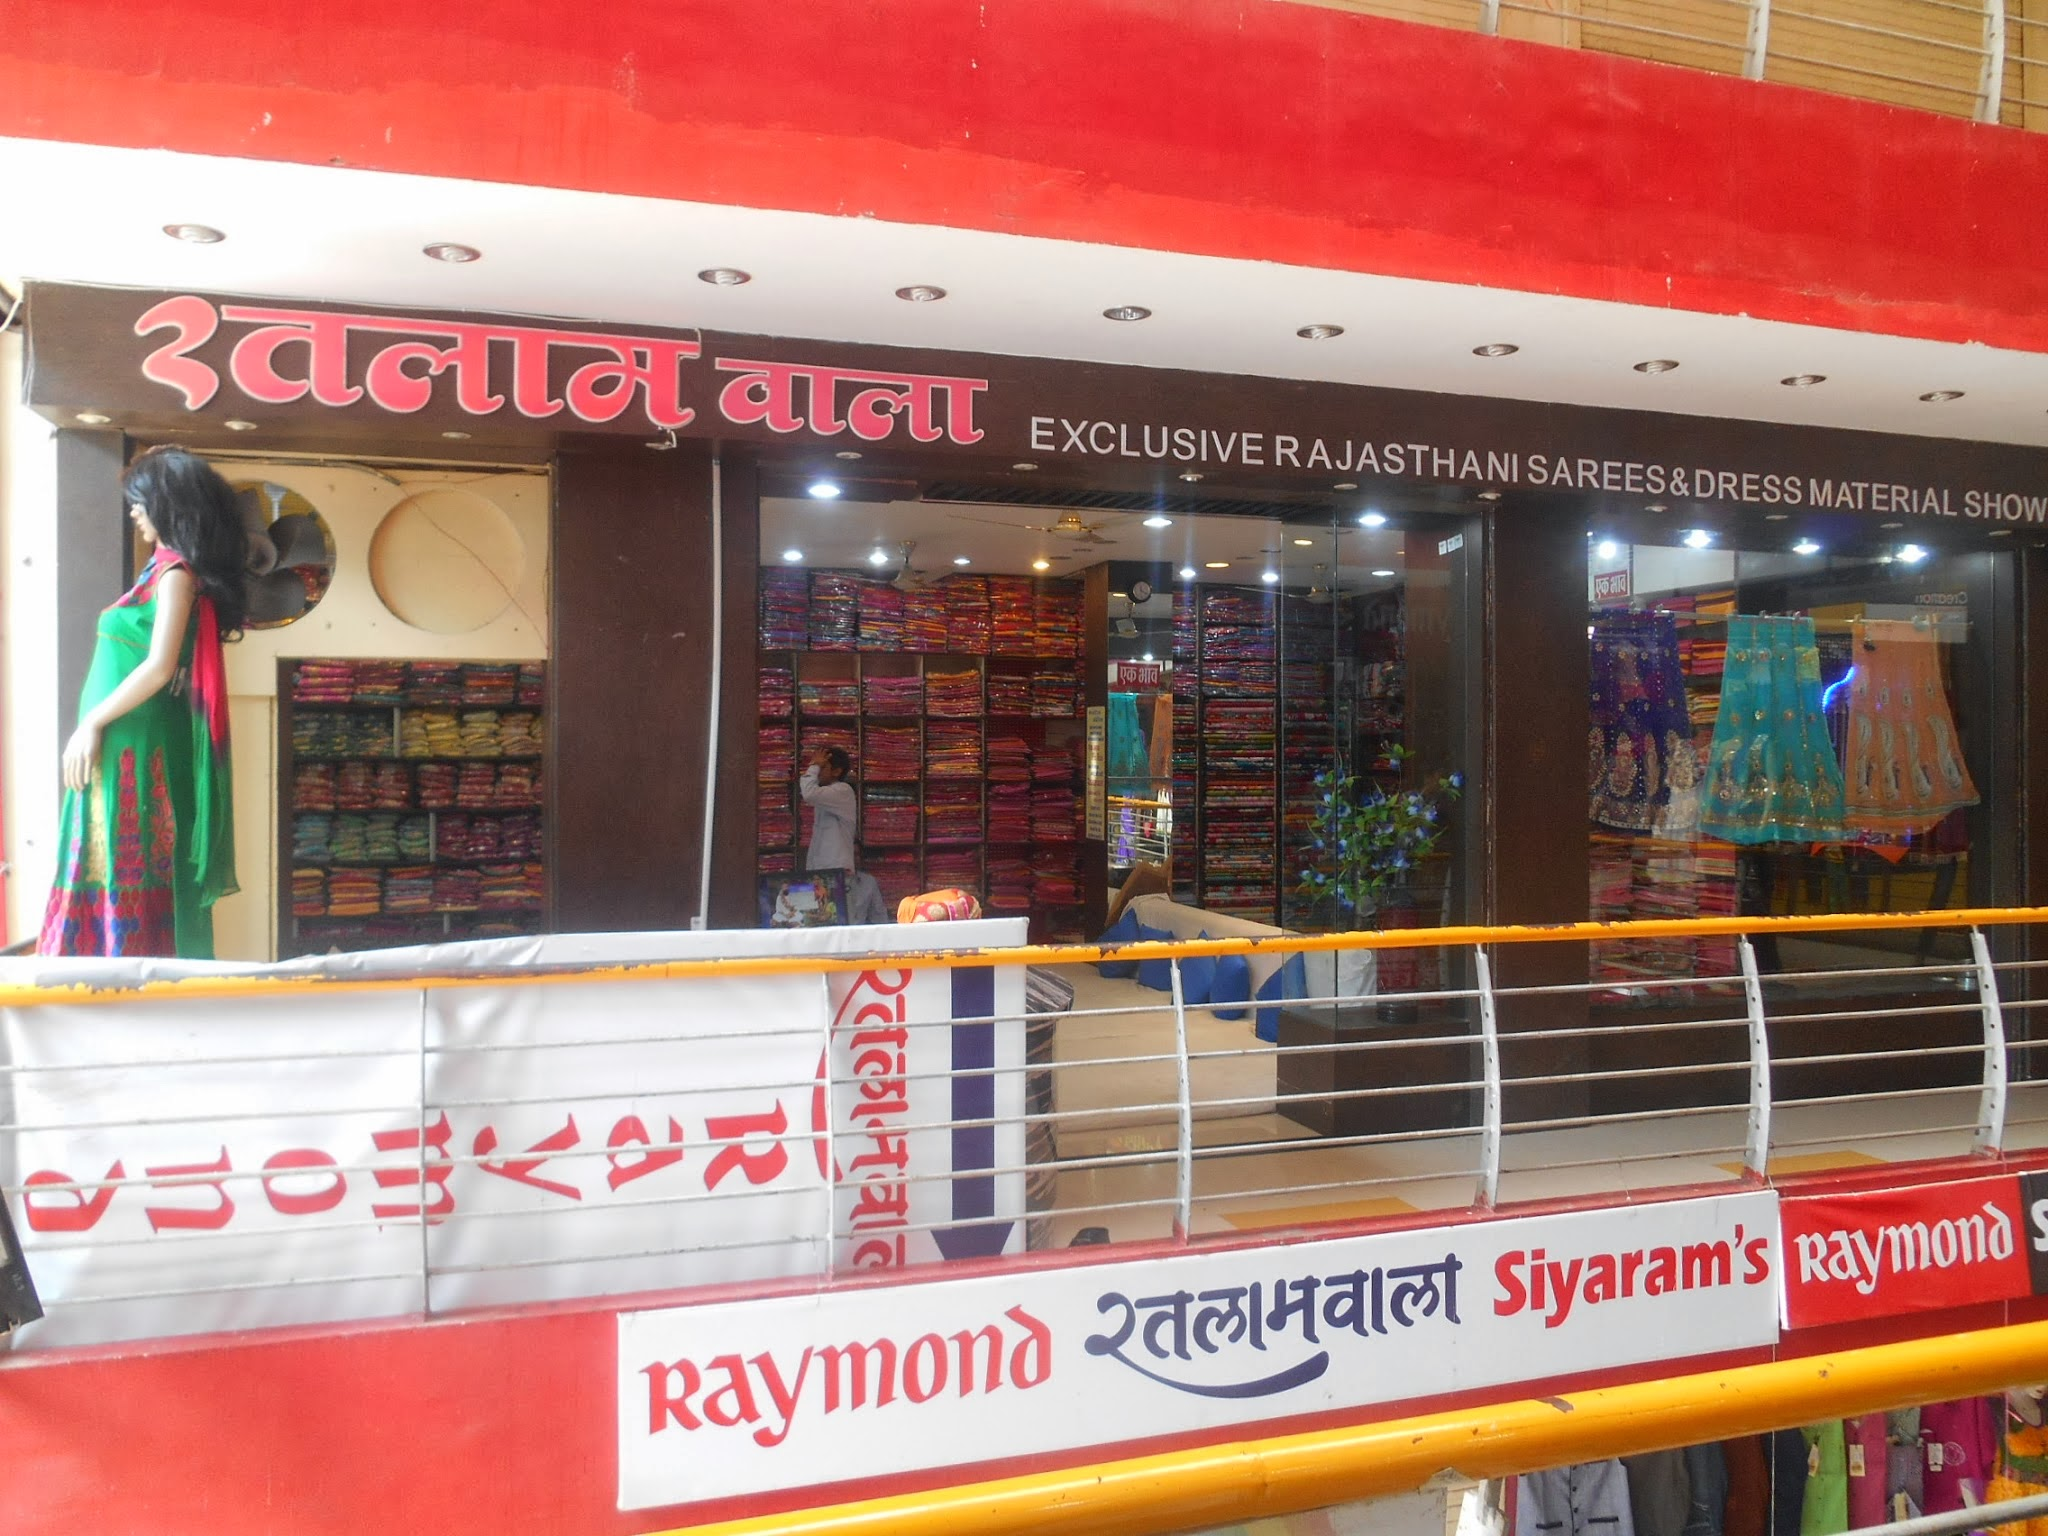 barcode-billing-software-for-ratlamwala-shop-in-ujjain